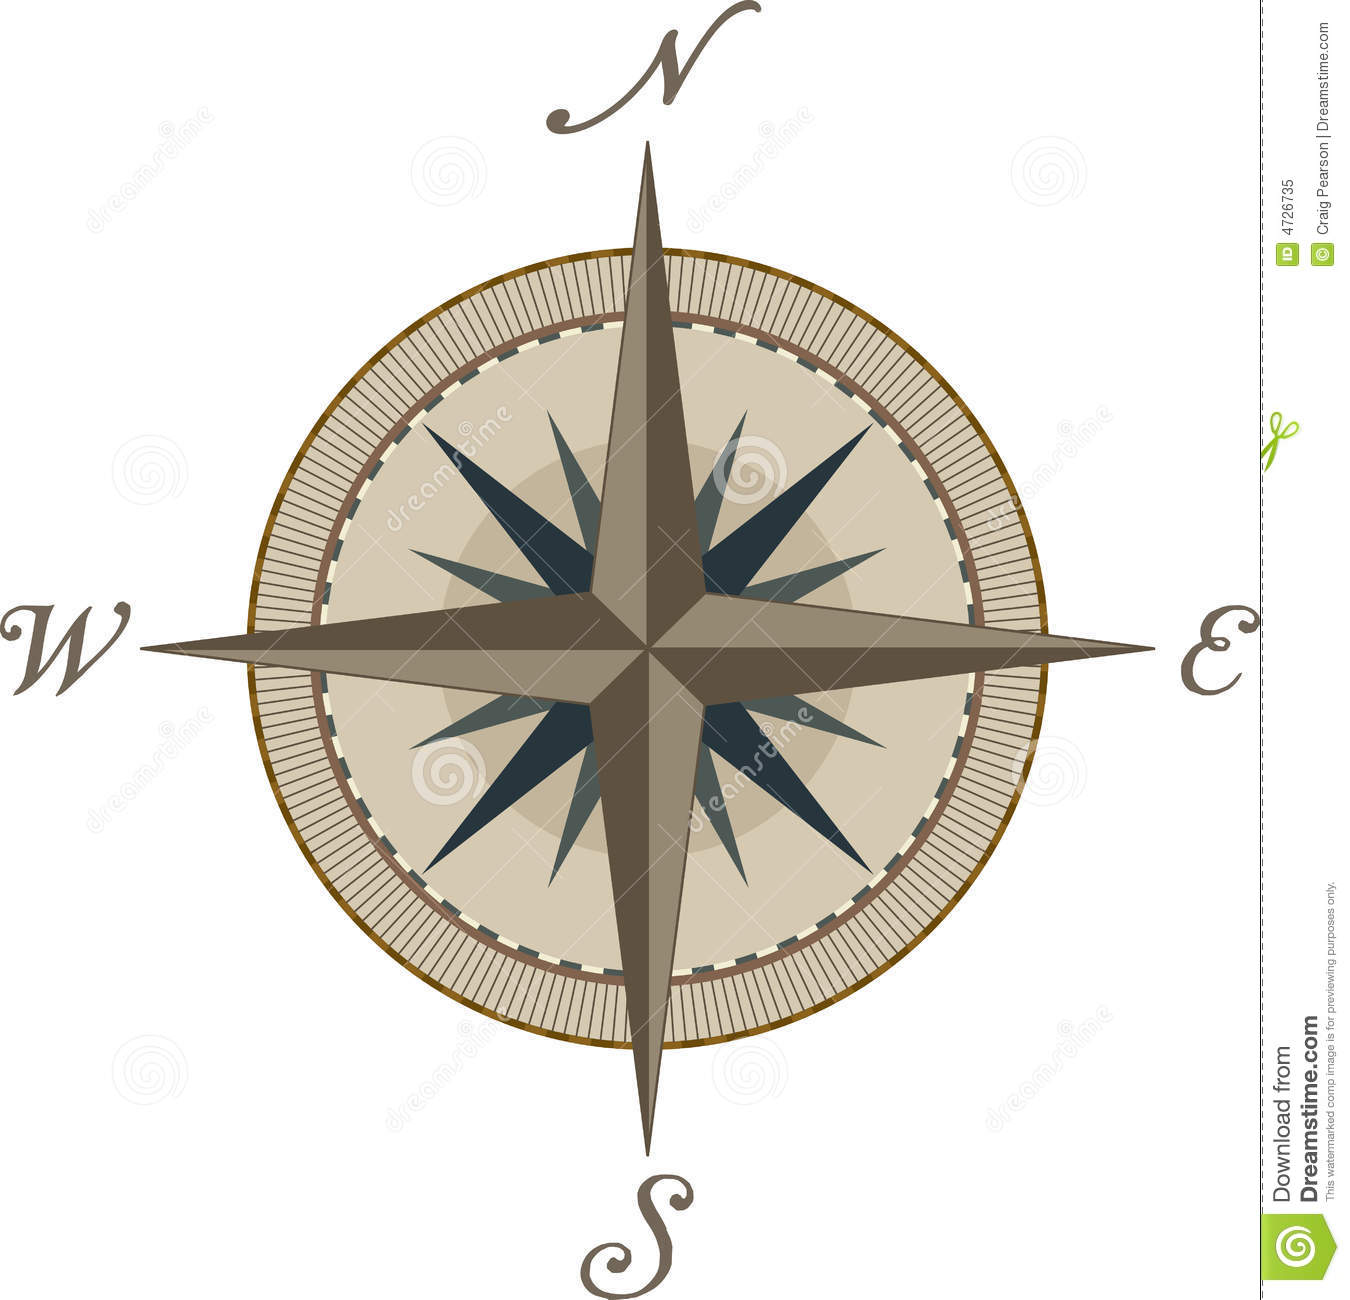 Compass stock vector. Illustration of compass, west ...